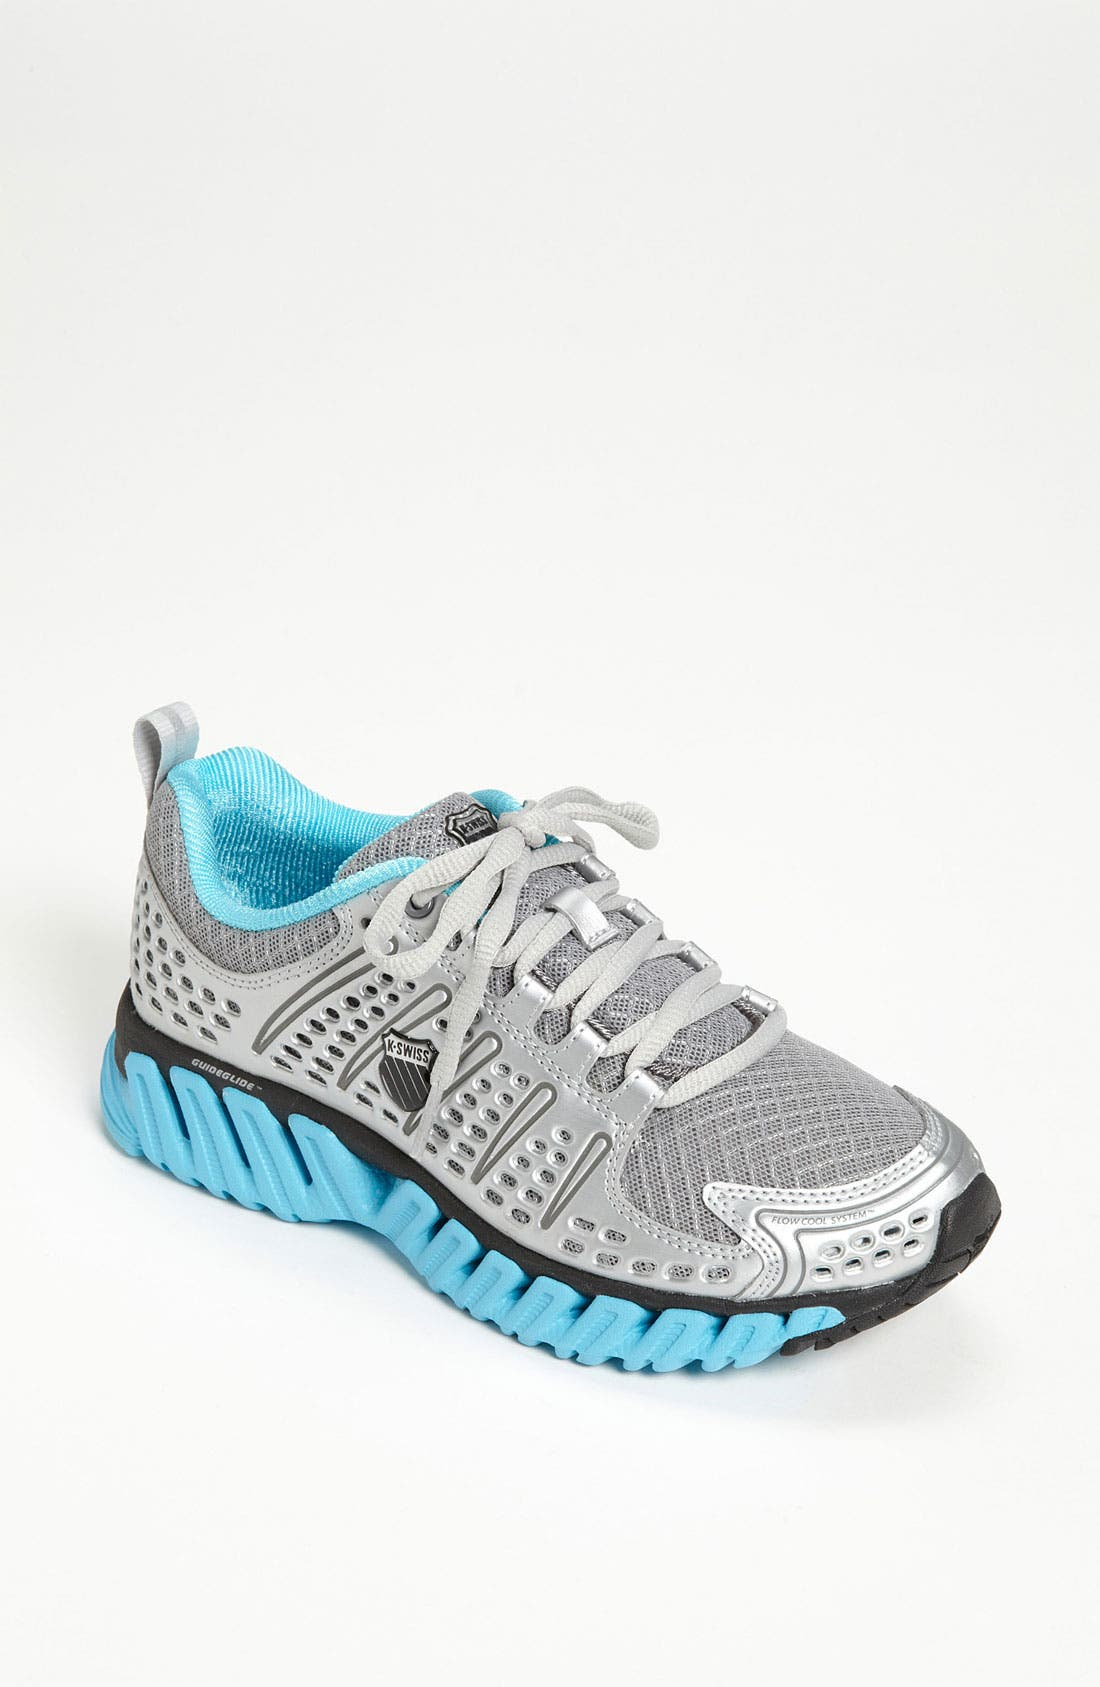 Main Image - K-Swiss 'Blade Max Endure' Training Shoe (Women)